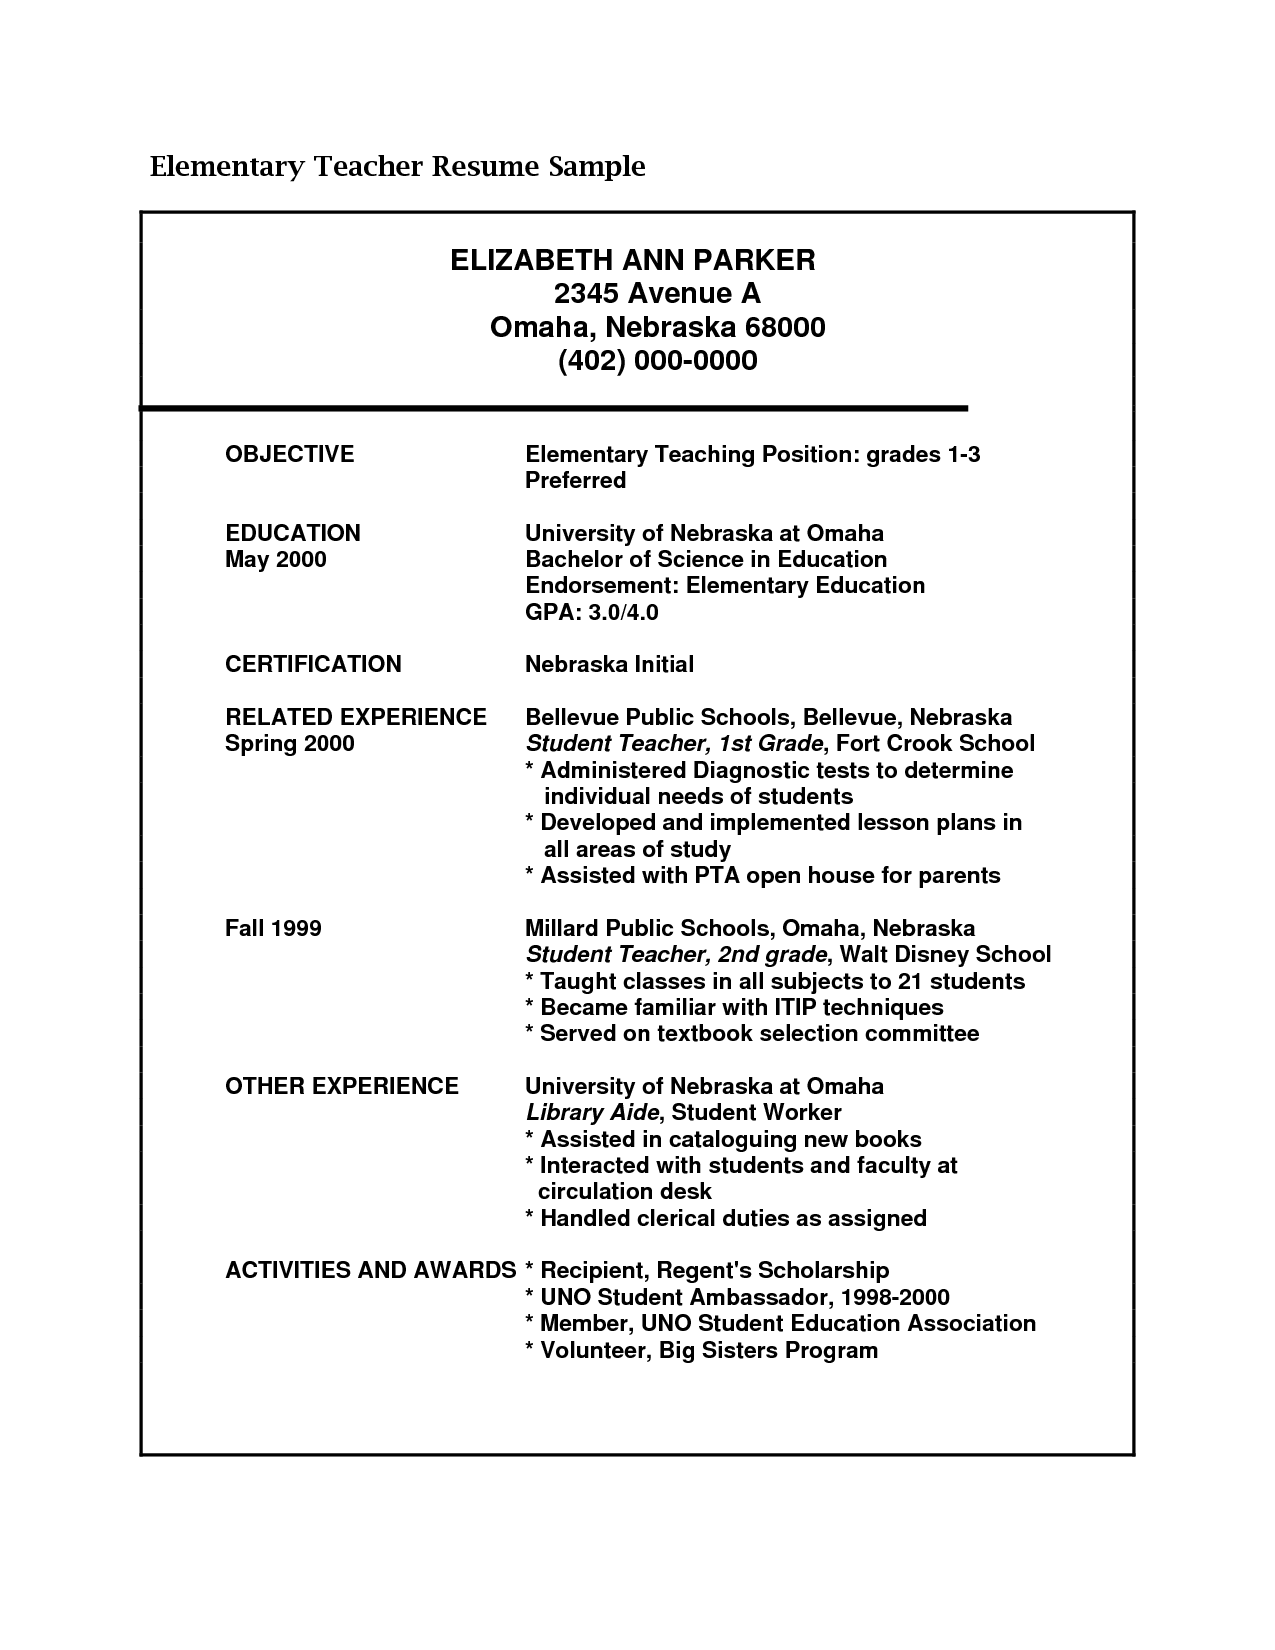 General Resume Objective Statements Resume Objective Statement For Teacher  Httpwwwresumecareer